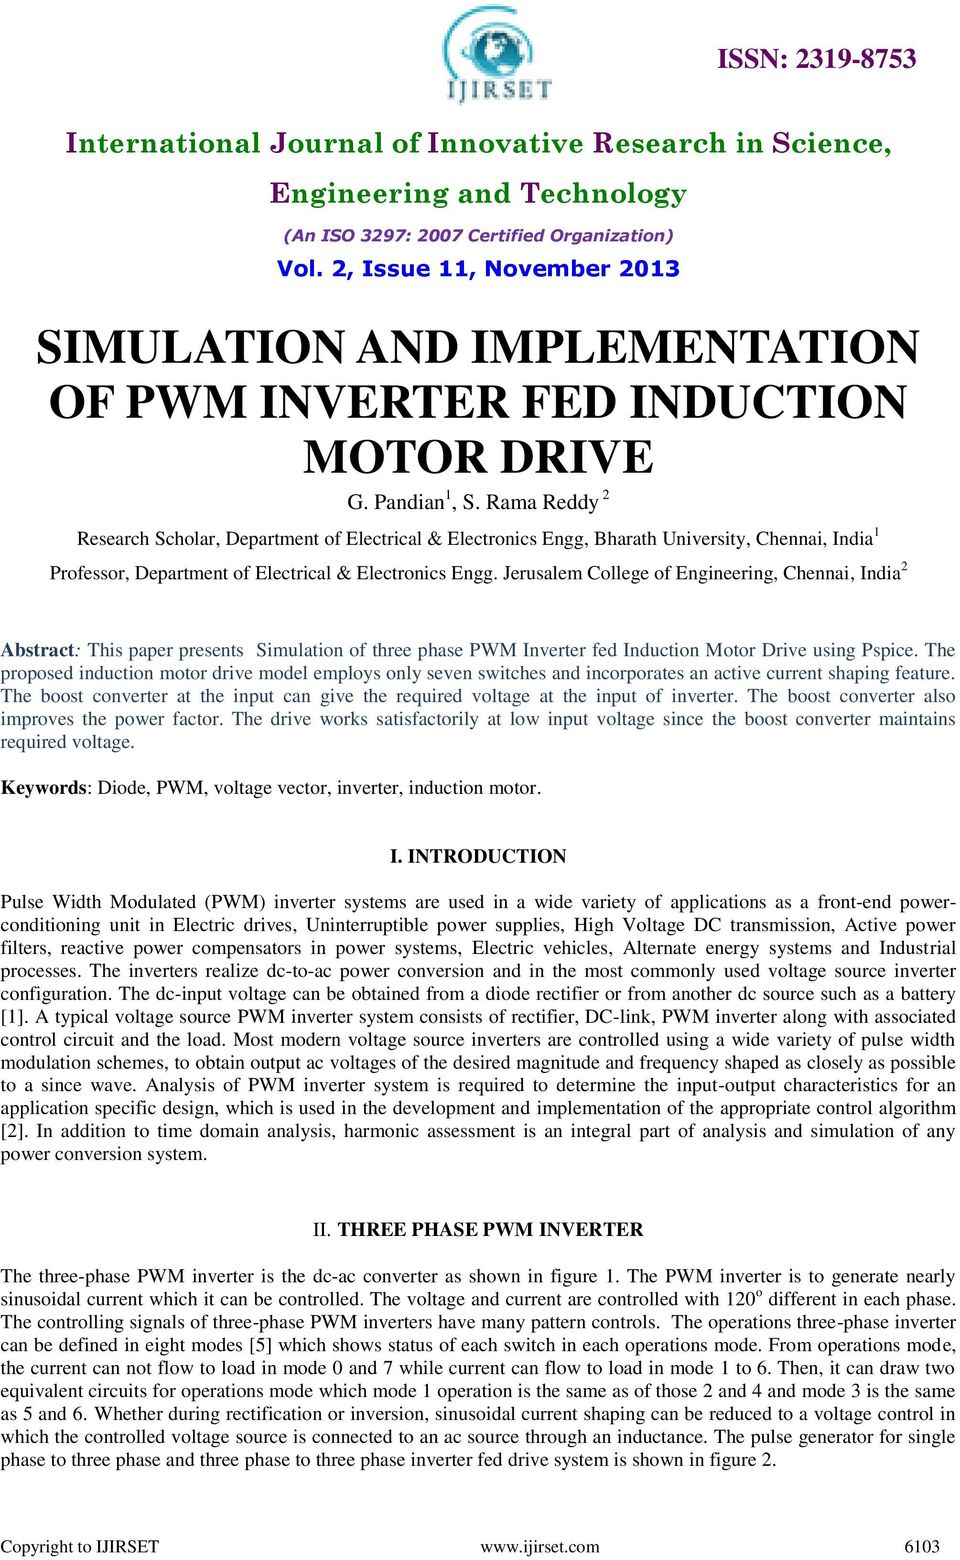 SIMULATION AND IMPLEMENTATION OF PWM INVERTER FED INDUCTION